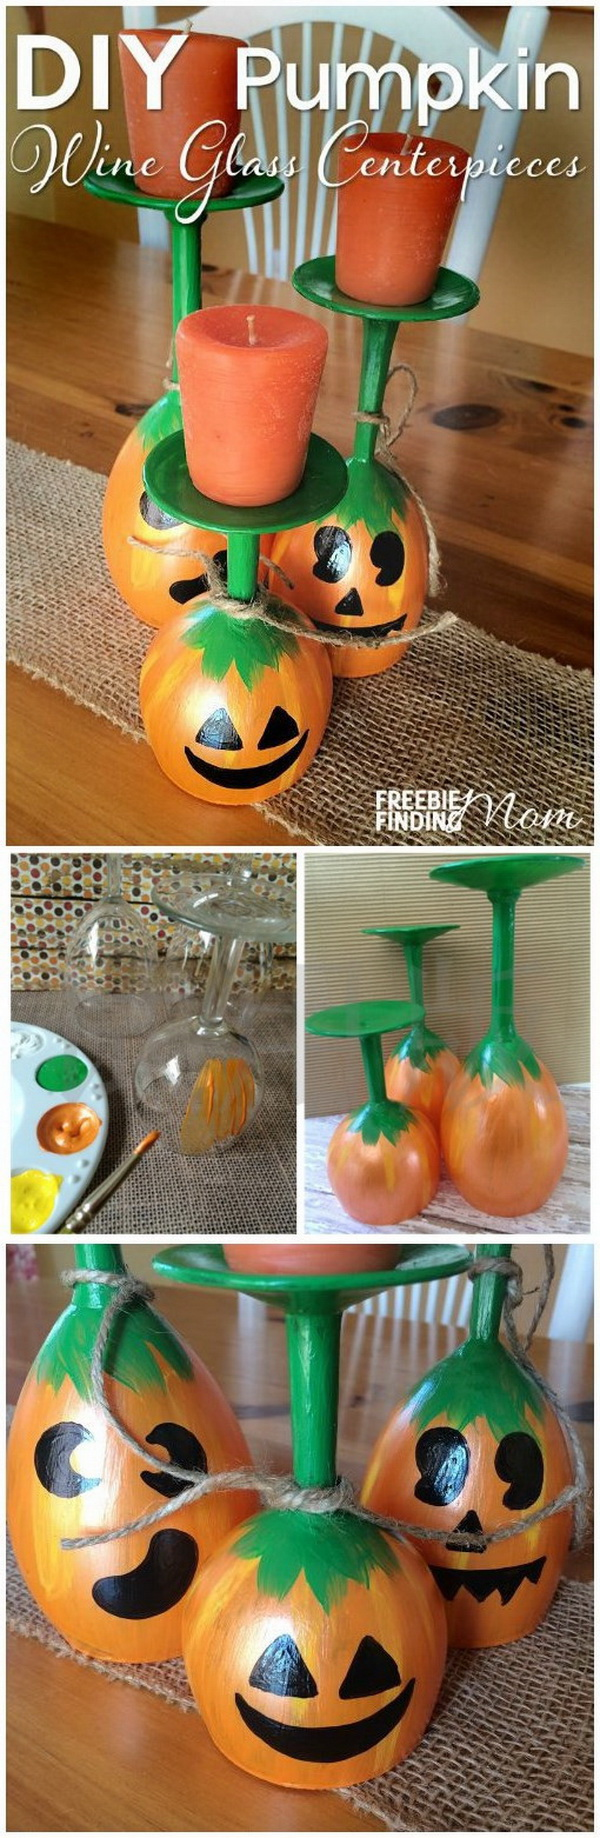 DIY Halloween Decorating Projects: DIY Pumpkin Wine Glass Centerpieces.